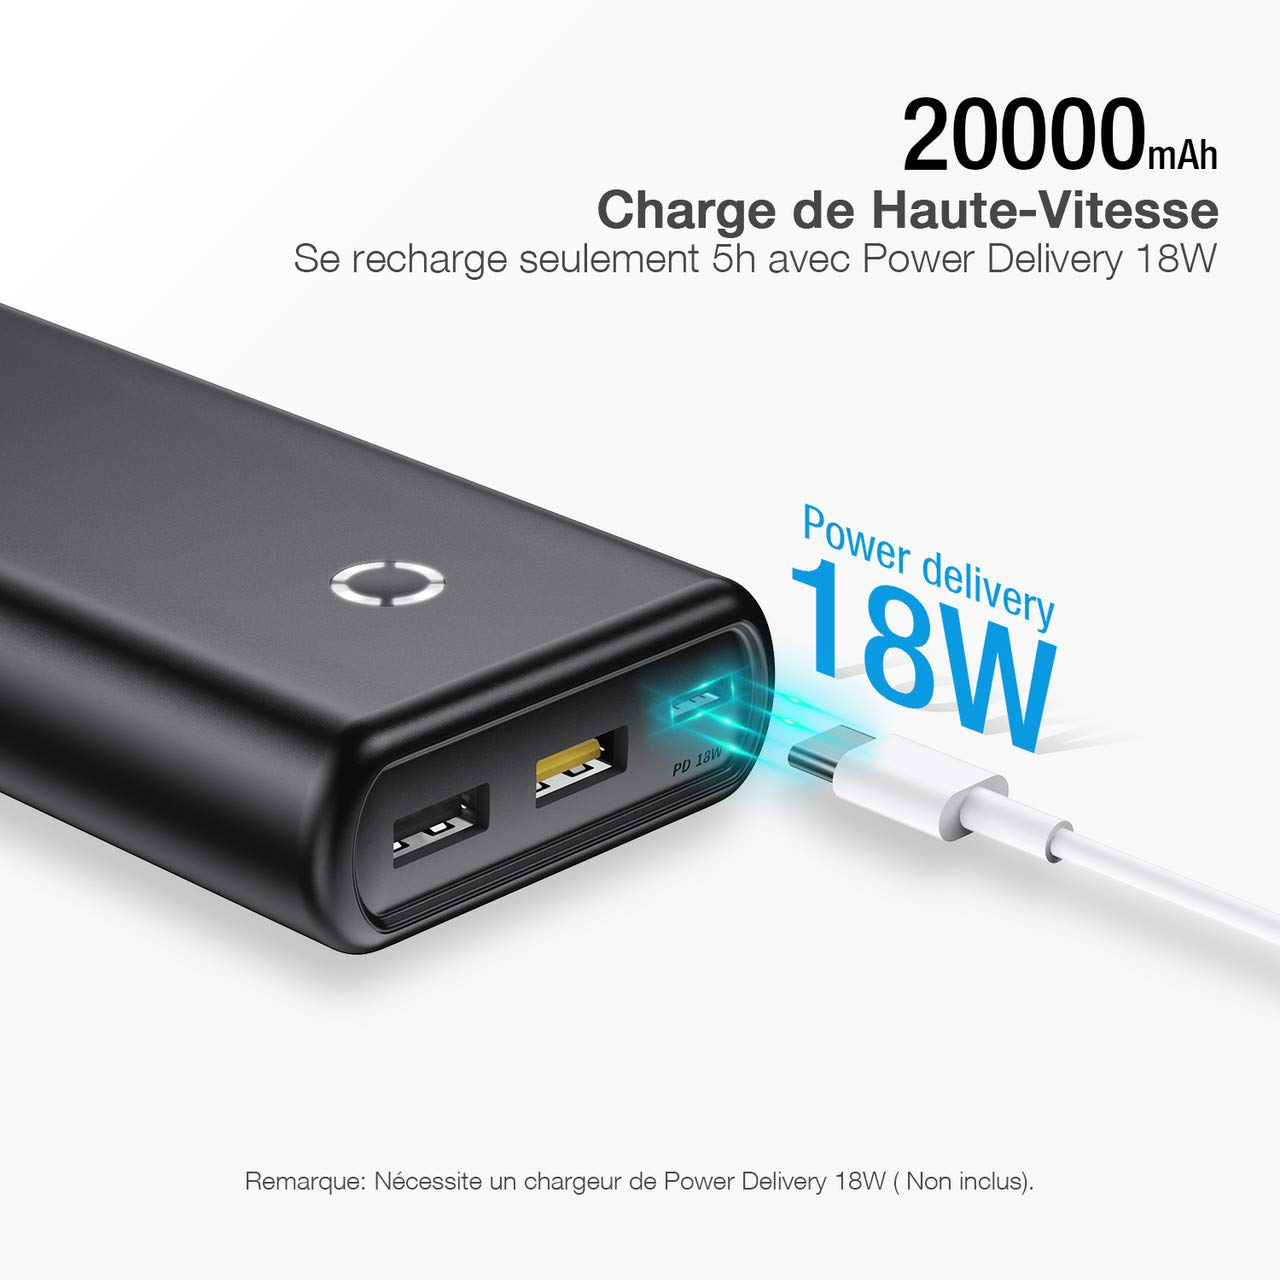 POWERADD Energycell Batterie Externe 20000mAh Power Delivery Type-C Chargeur Portable QC 3.0 Grande Capacité pour Nintendo Switch, iPhone, MacBook, Galaxy S8, ASUS, LG, etc